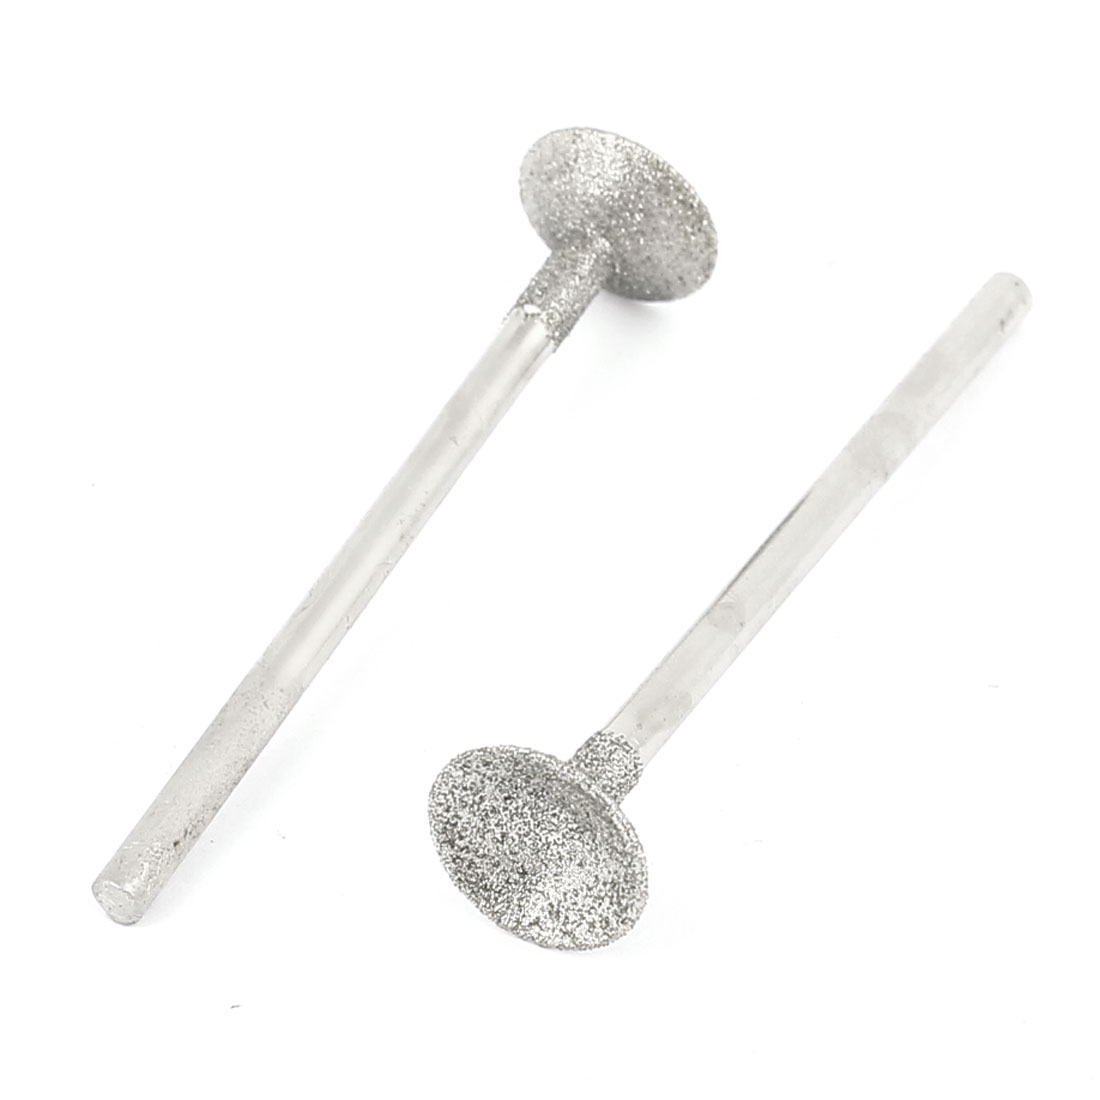 Silver Tone Metallic Shank Round Shaped T Head Diamond Mounted Point Grinder Buffing Bit Tool 3mm x 10mm 2 Pcs